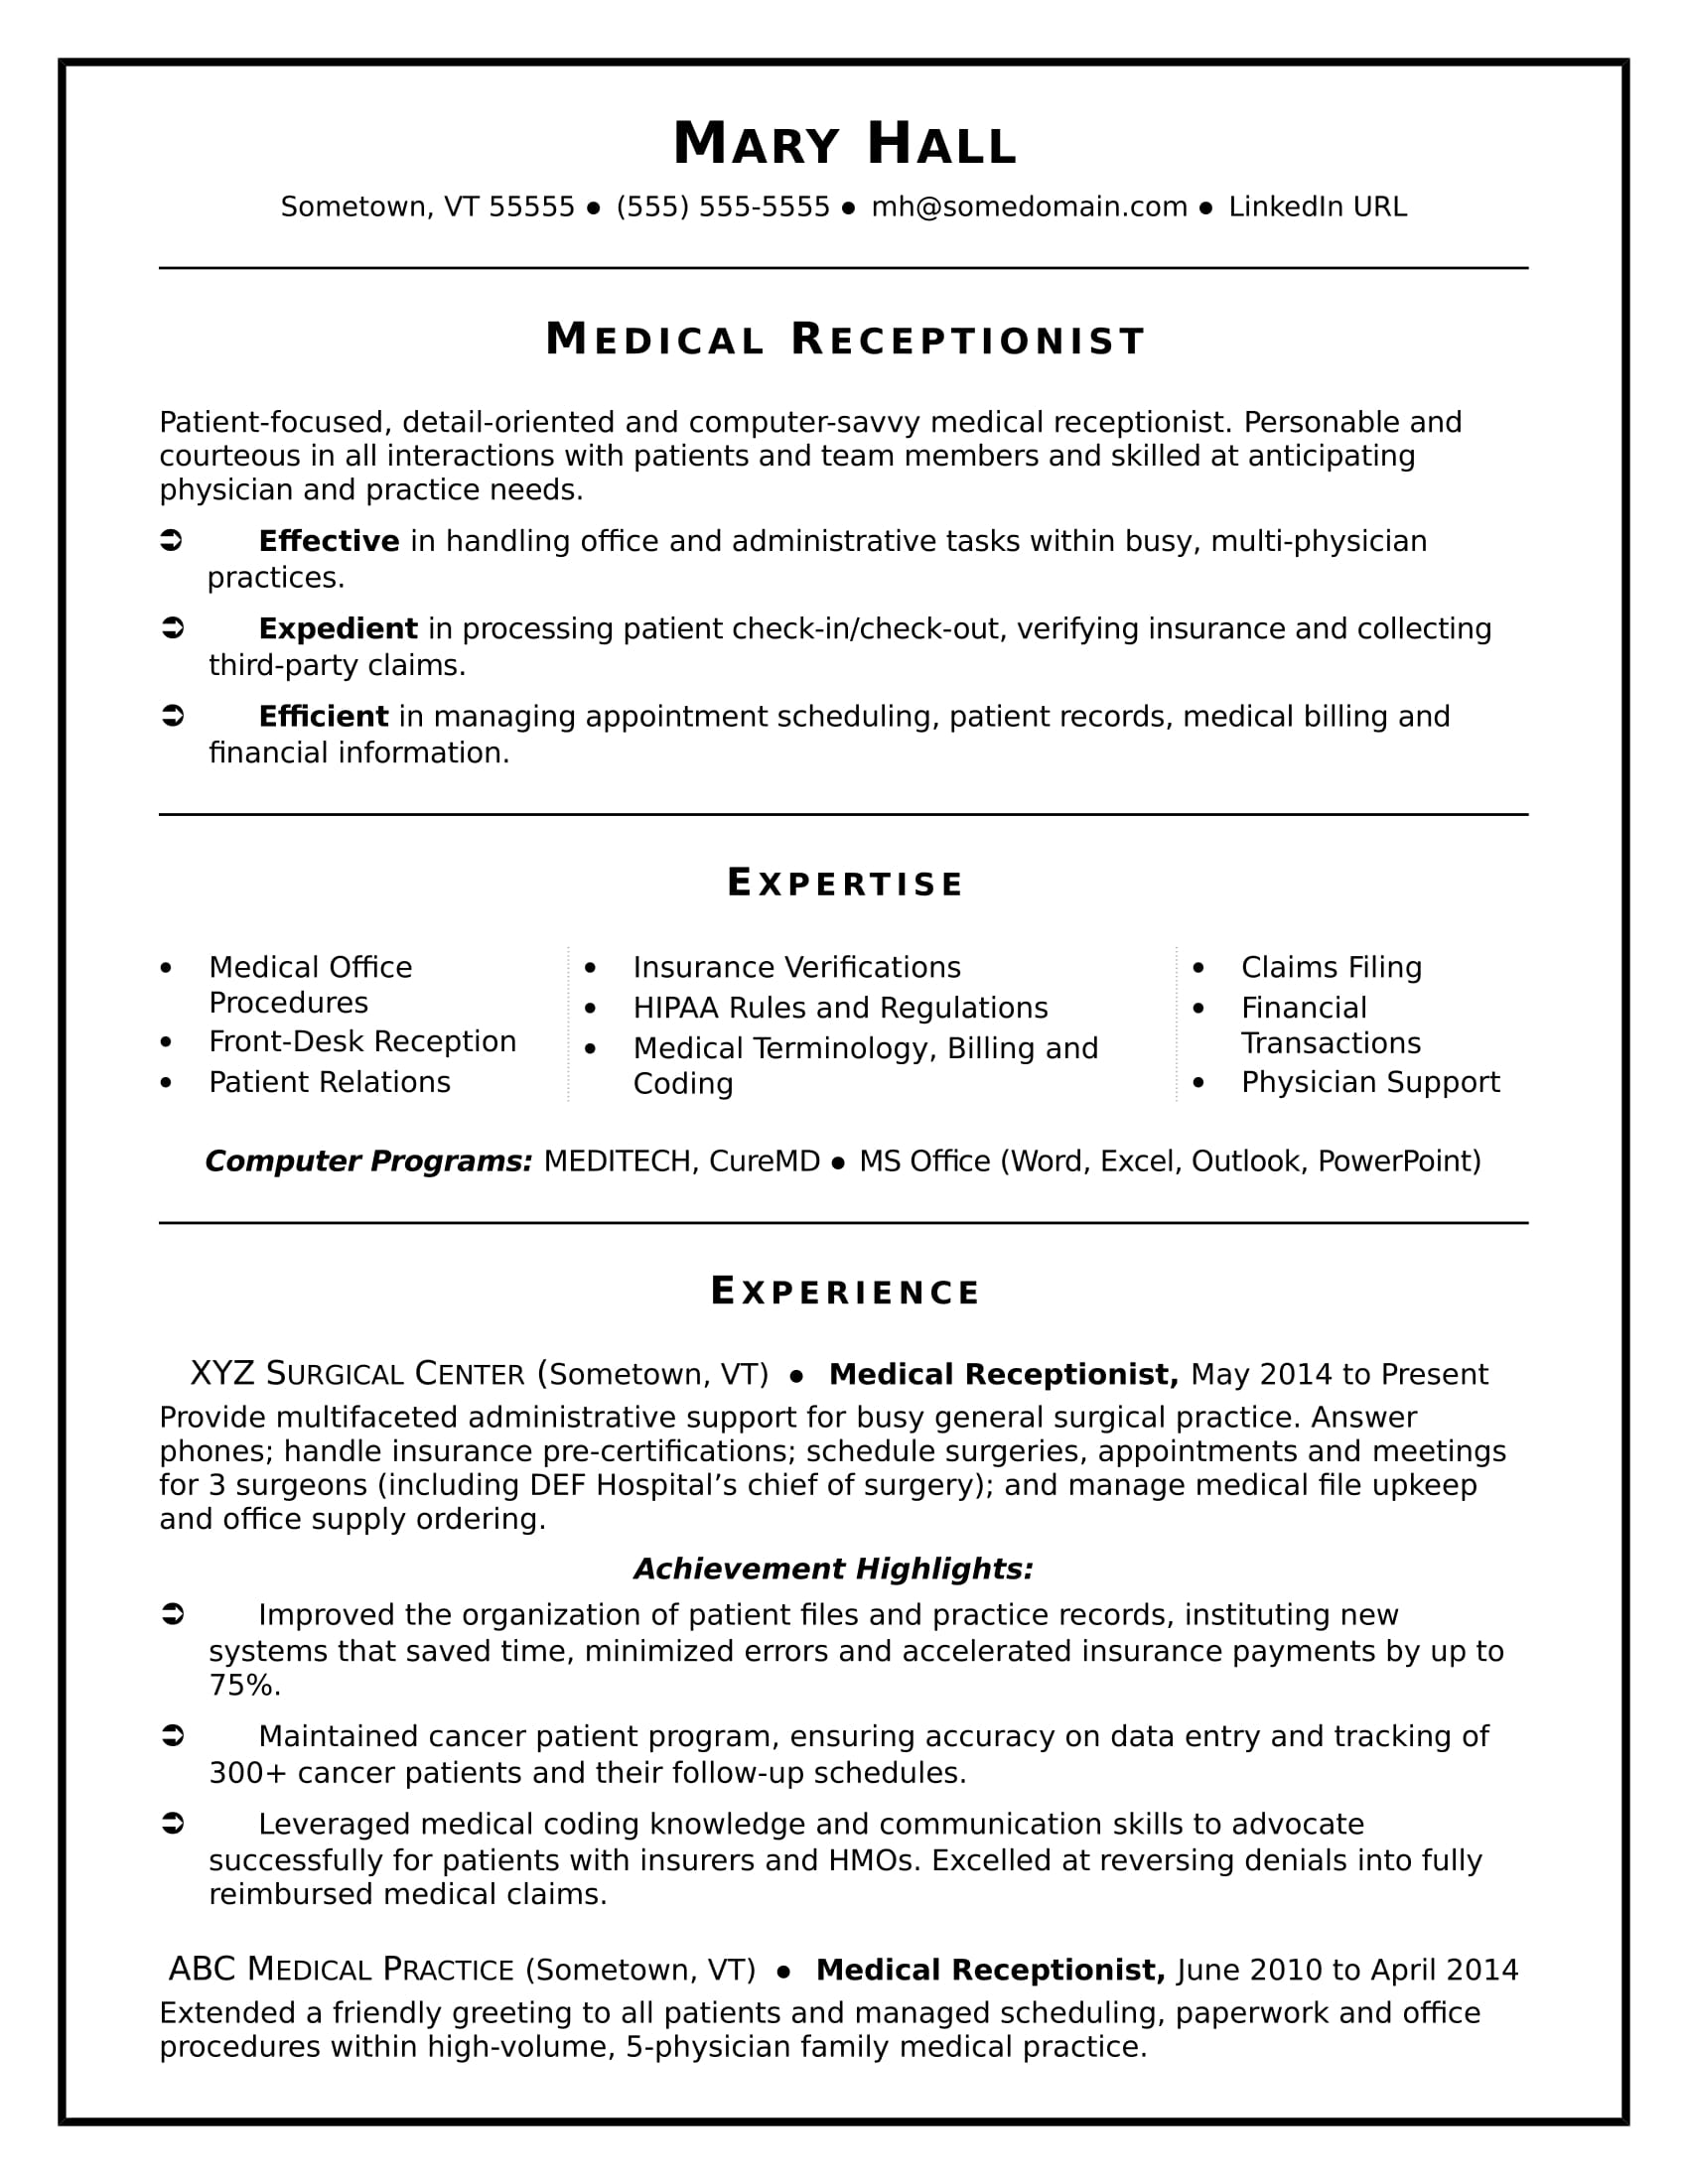 medical receptionist resume sample - Medical Receptionist Resume Examples